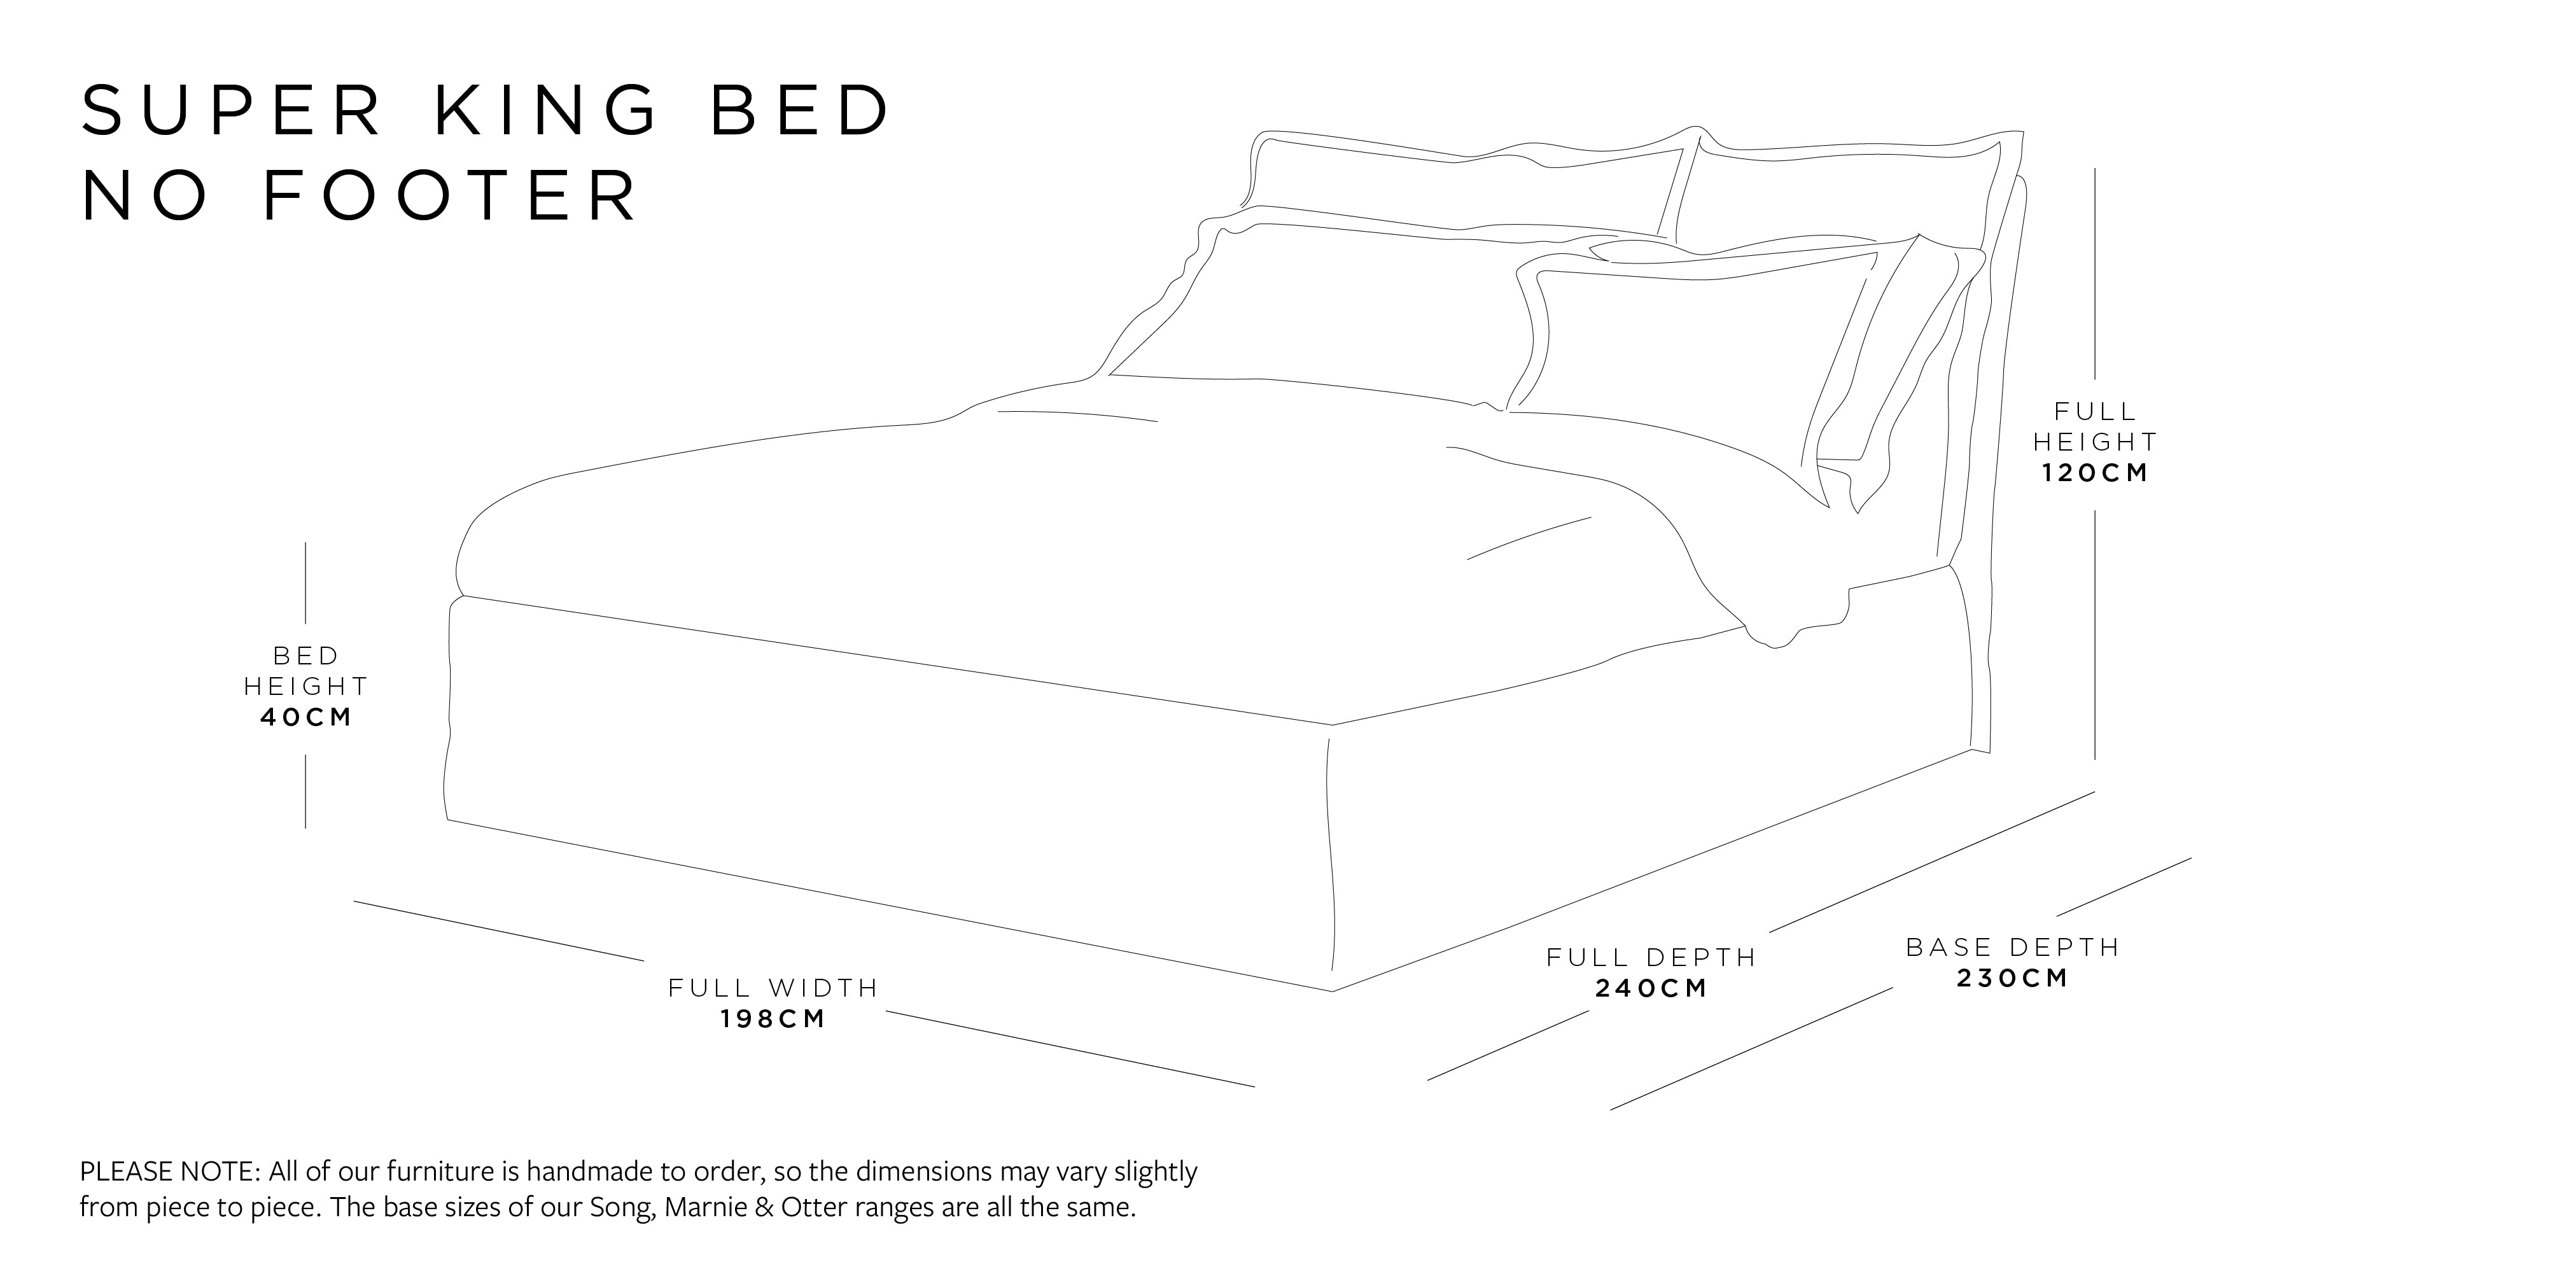 Super King Bed Without Footer Dimensions